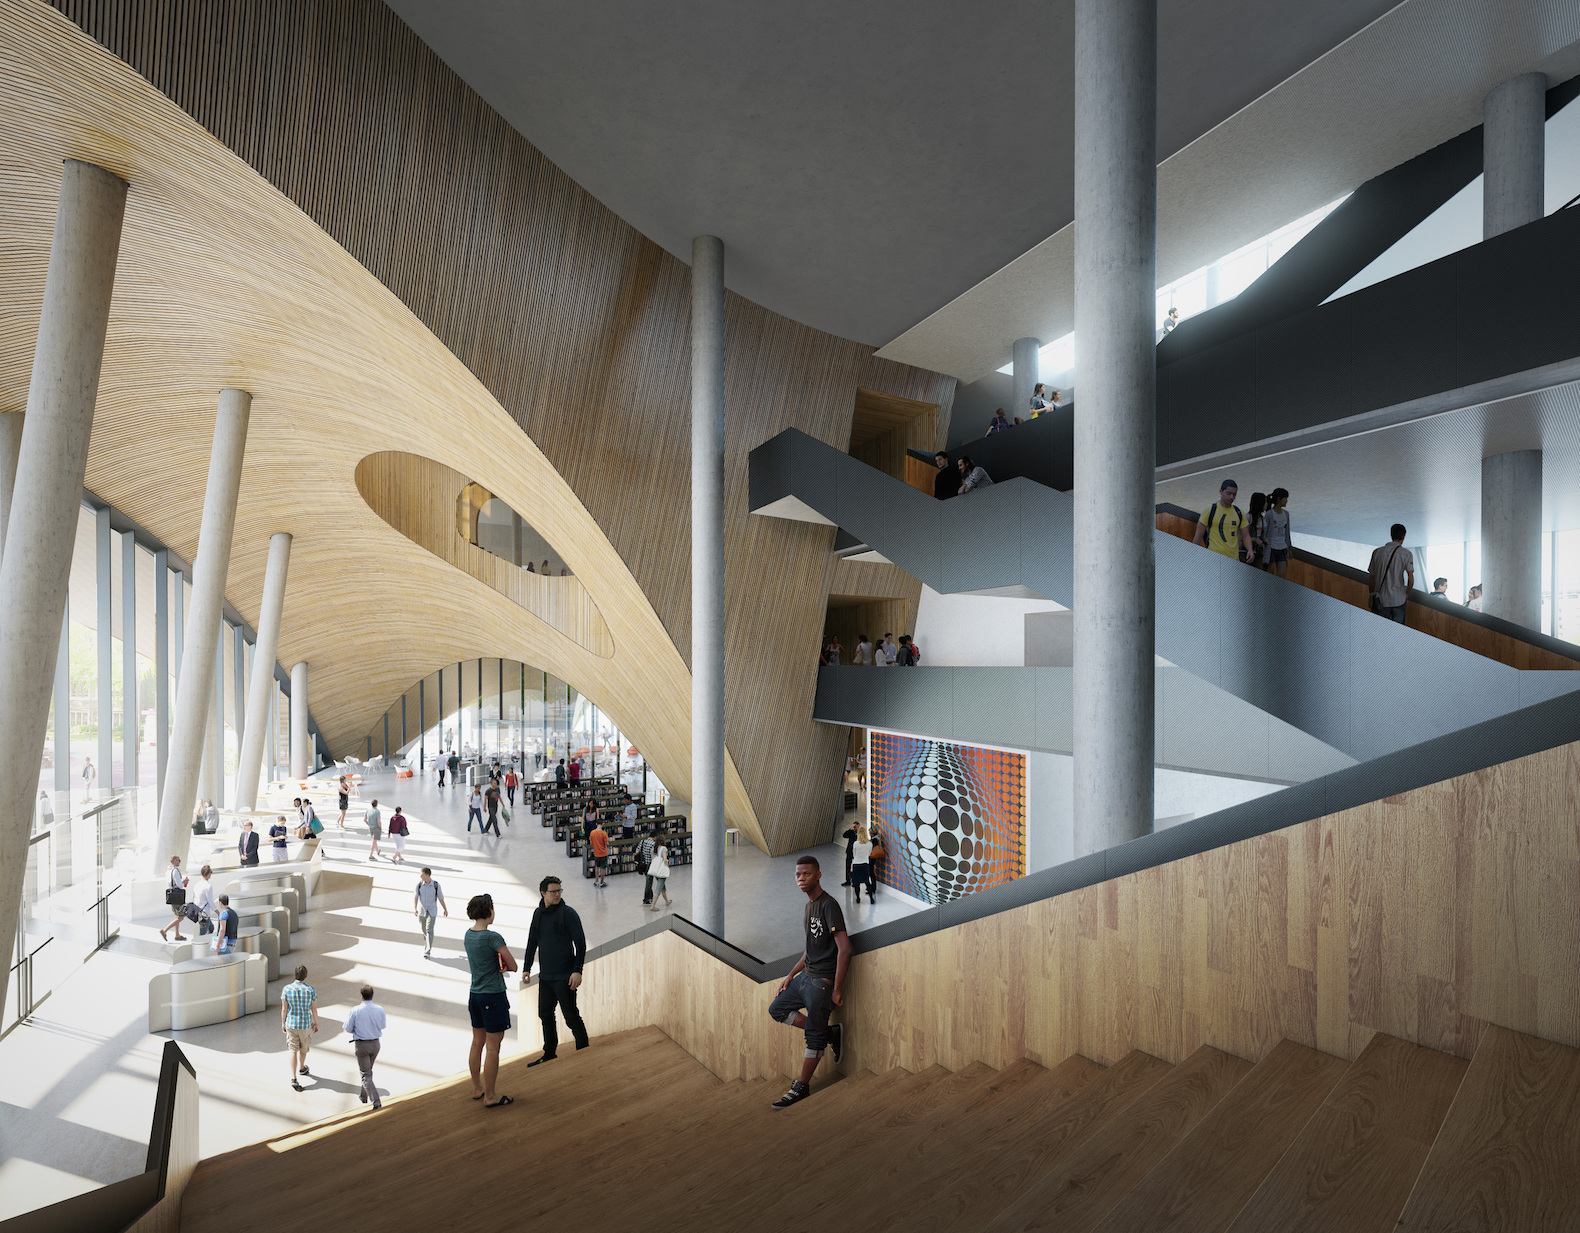 Snhetta Unveils Designs For Temple Universitys Green roofed Library In Philadelphia